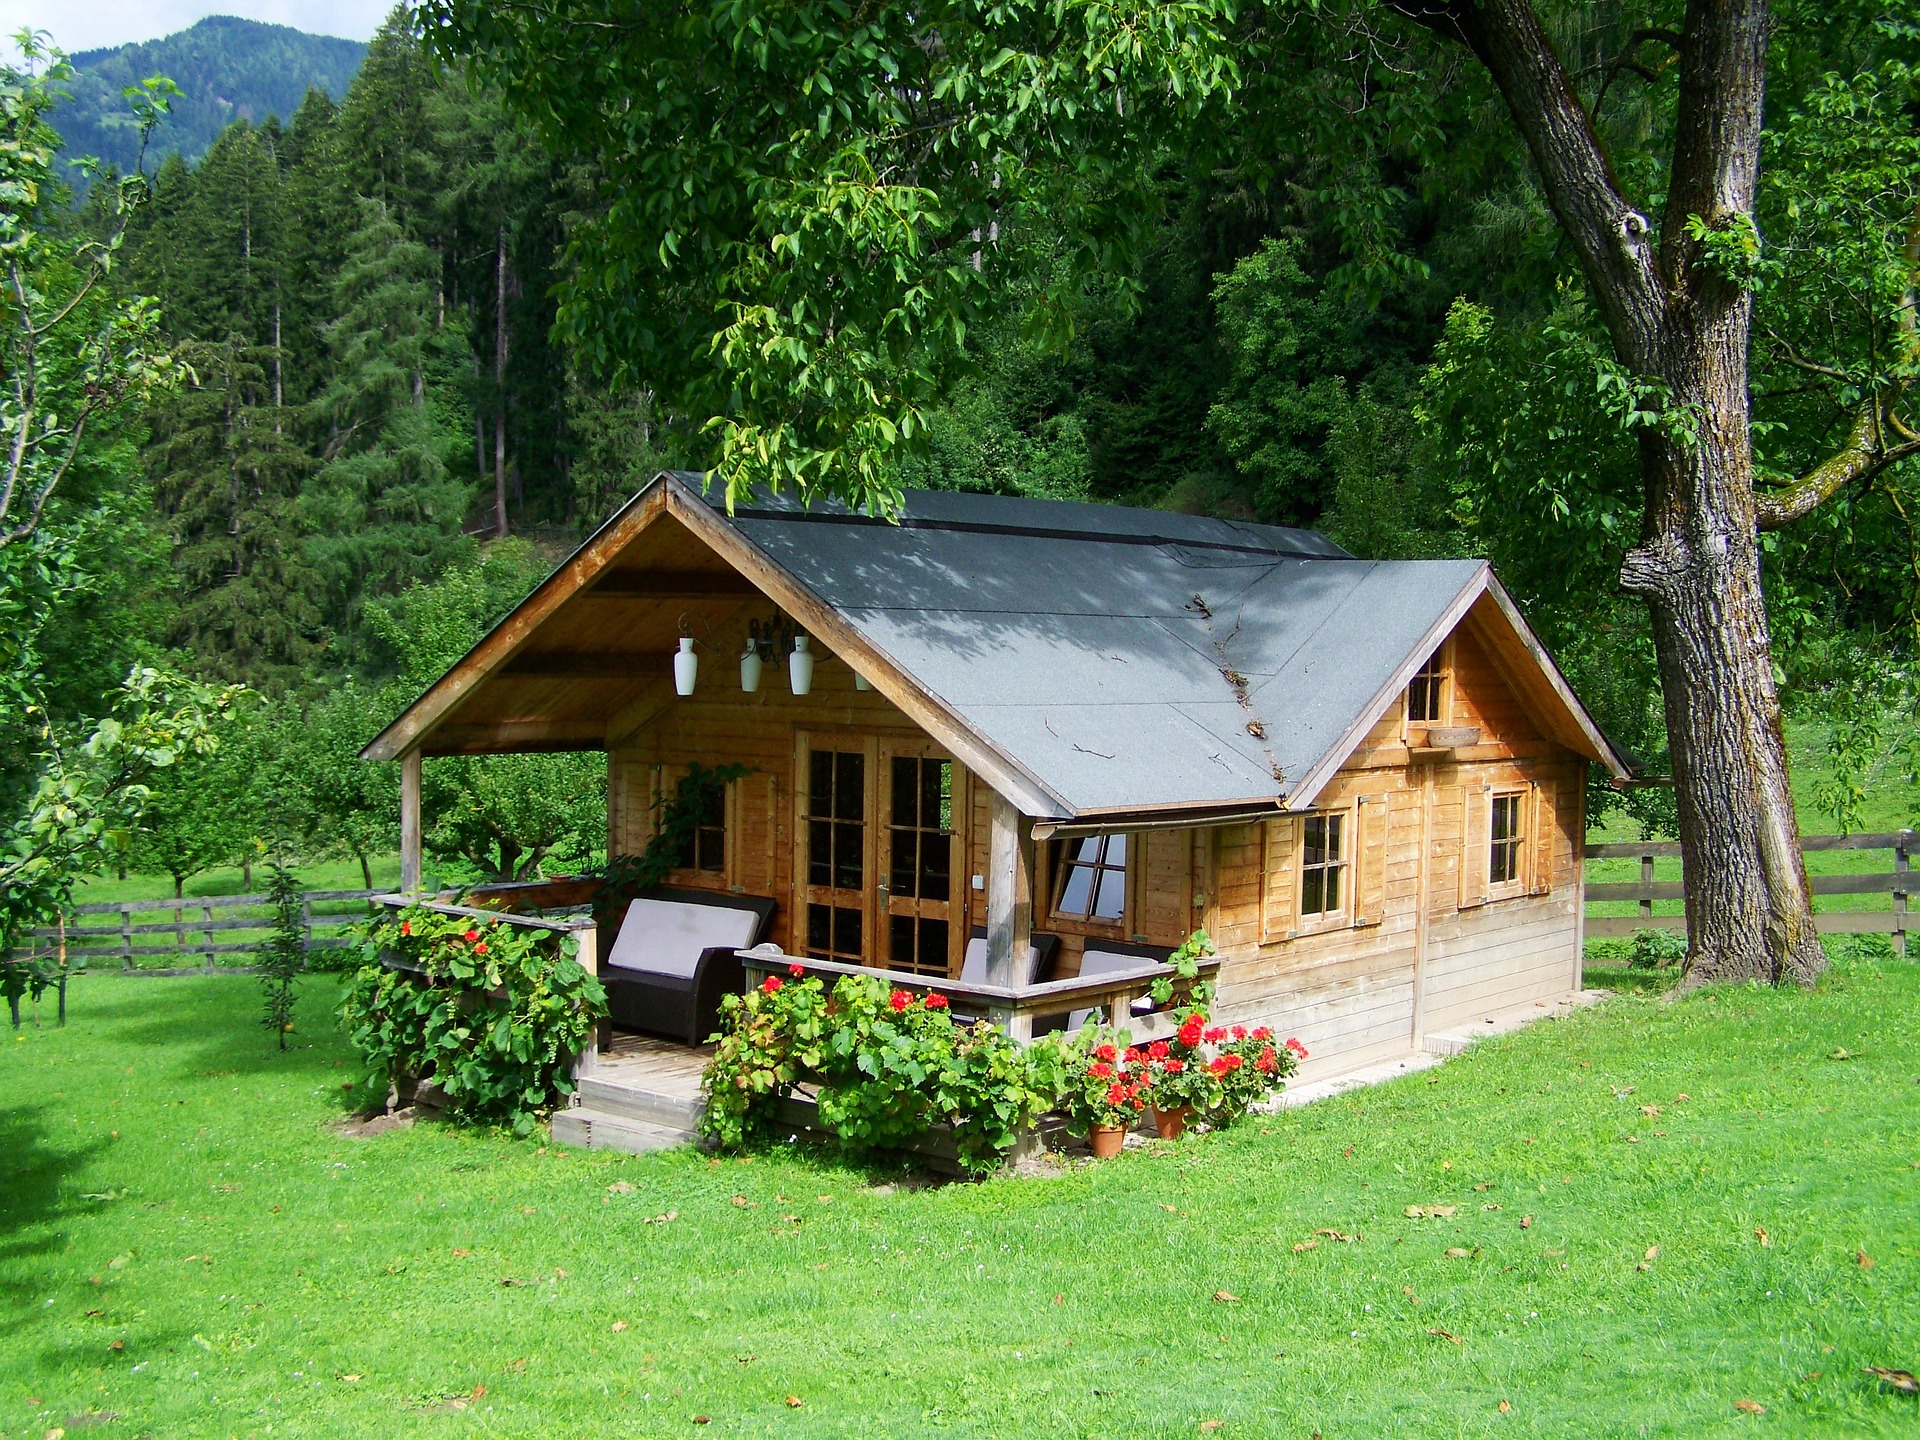 , Tiny Houses Full Guide 2021, Best Garden, Home And DIY Tips